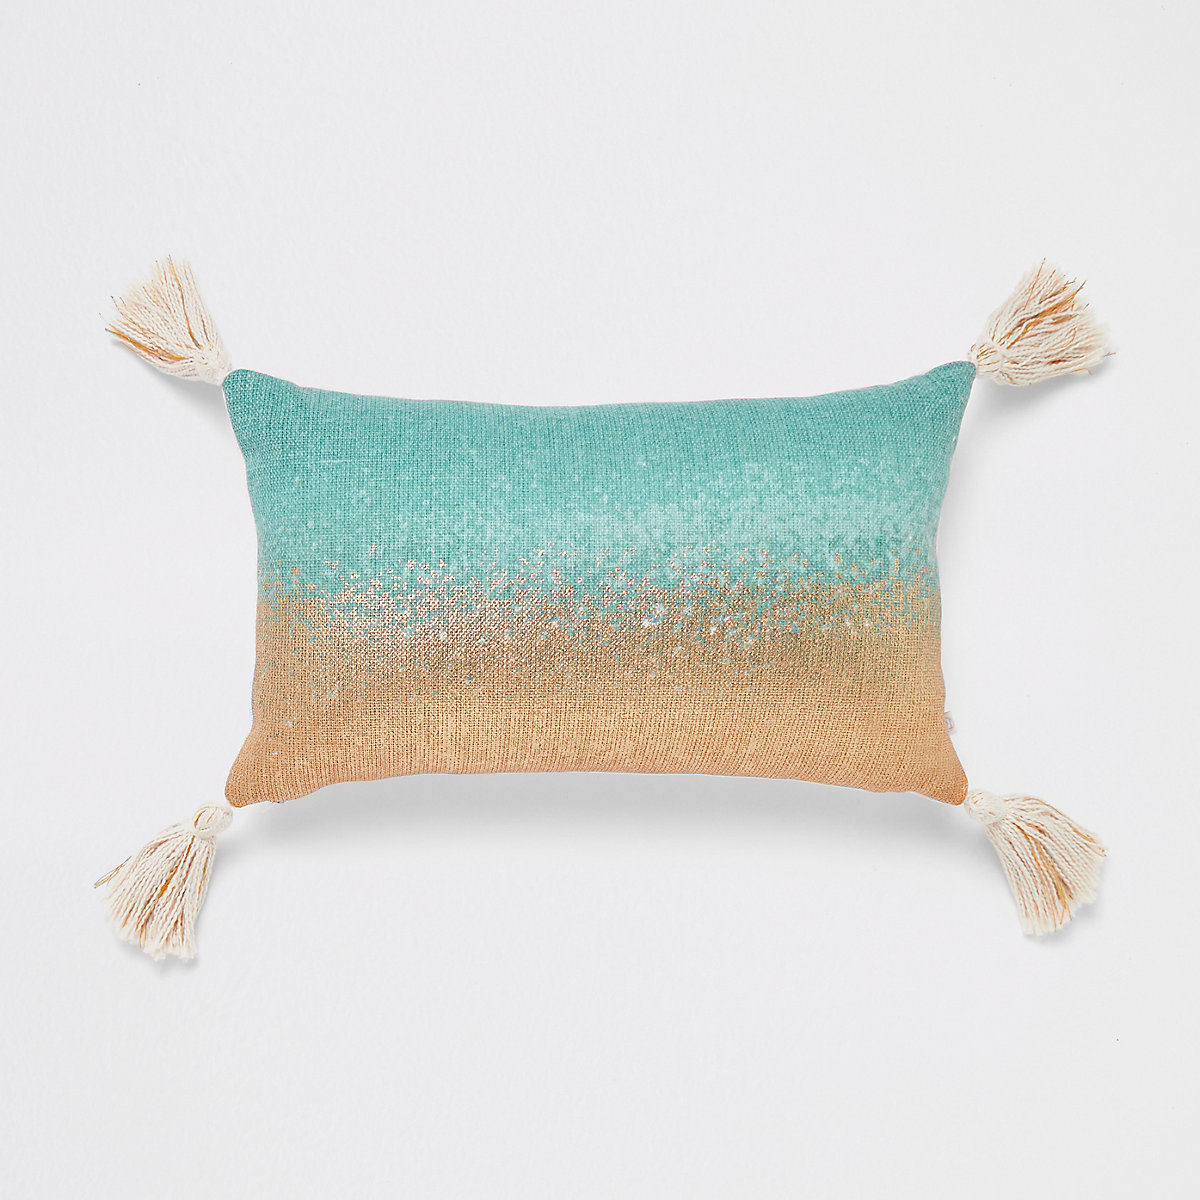 Mint to gold ombre cushion with tassels